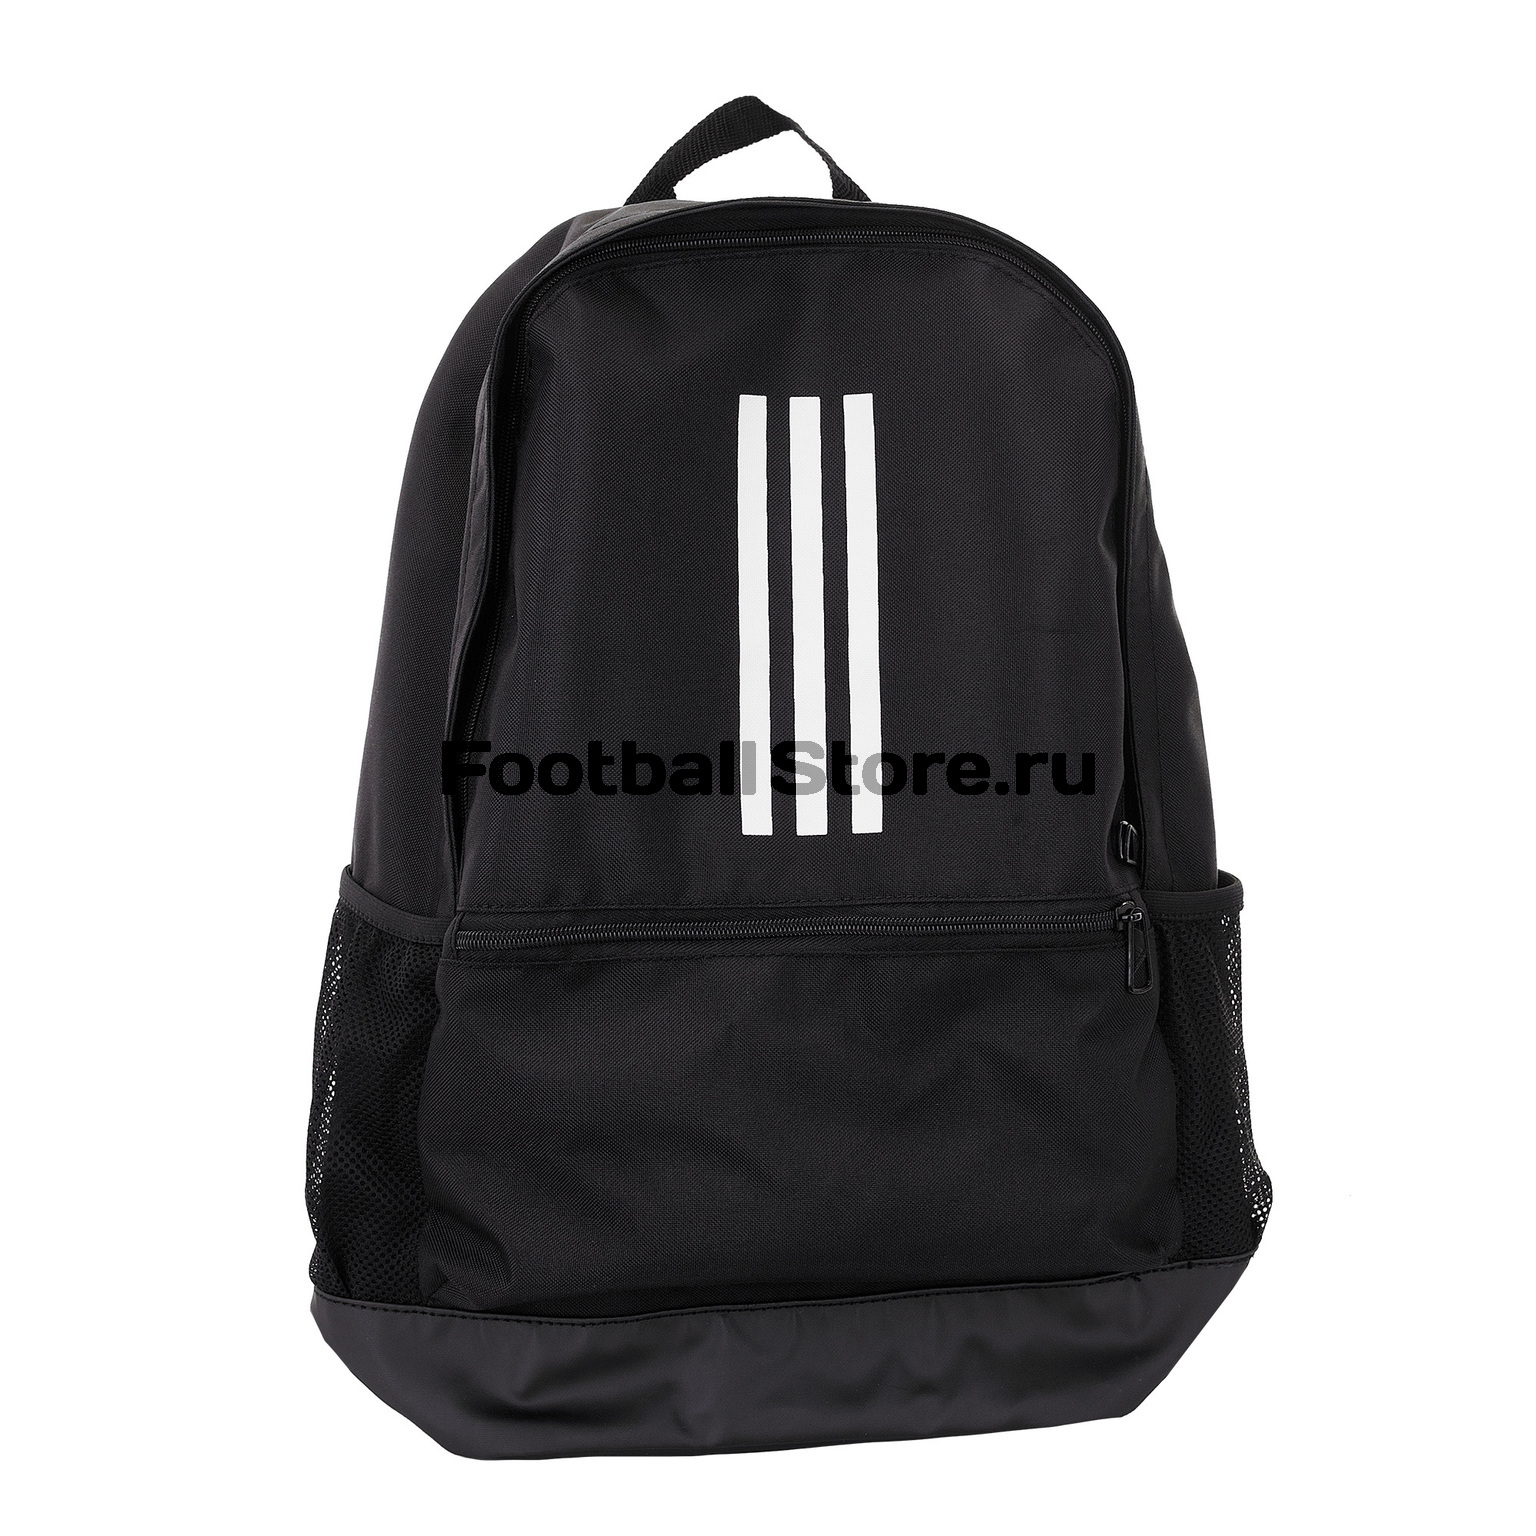 Рюкзак Adidas Tiro Backpack DQ1083 рюкзак adidas tiro bp bs4761